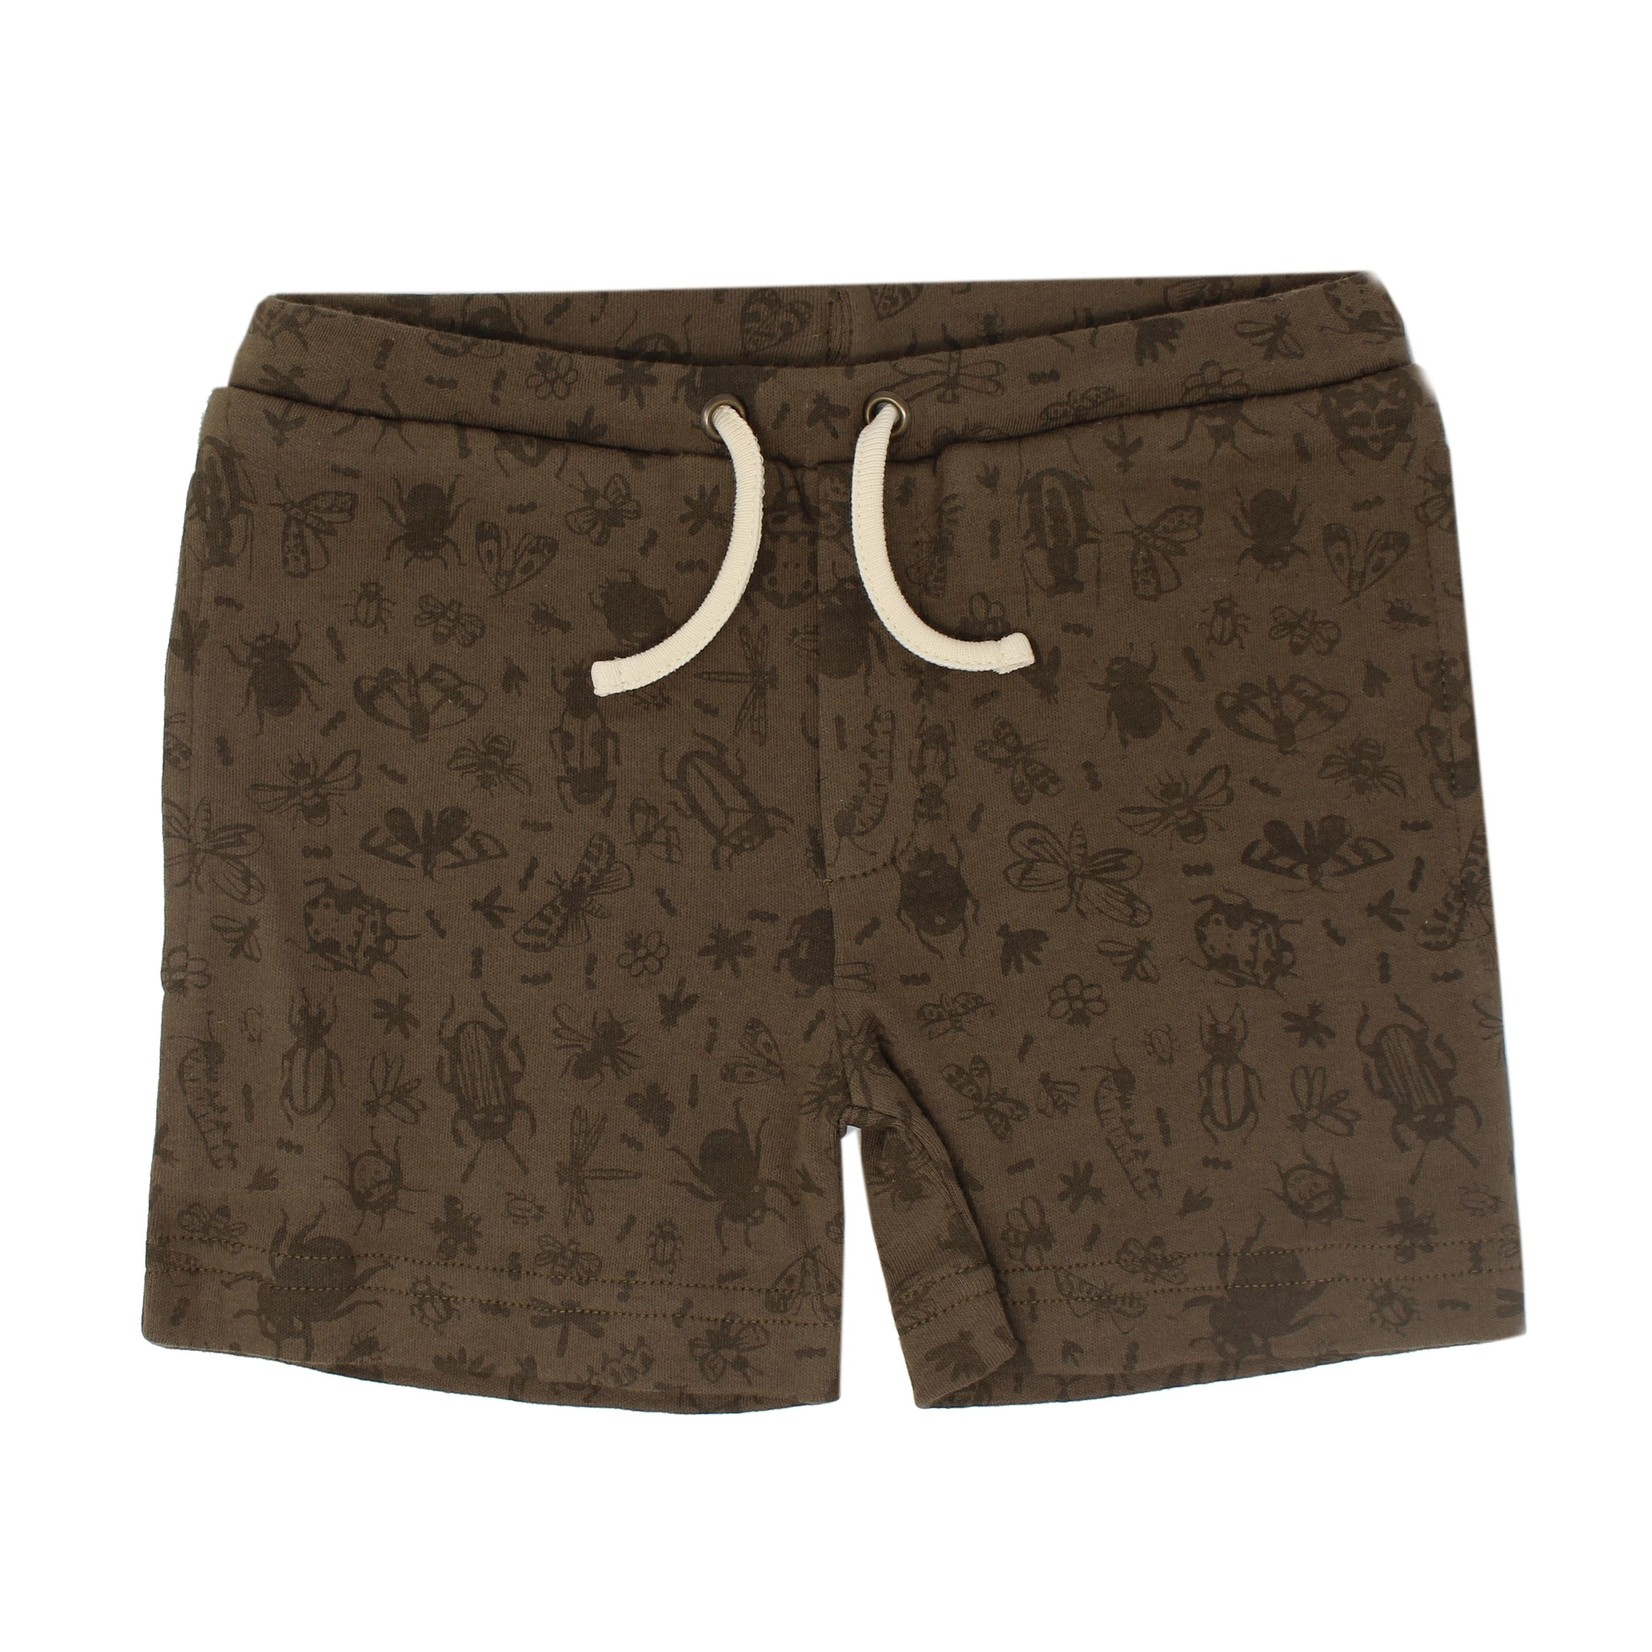 L'oved Baby Don't Bug Me Summer Shorts